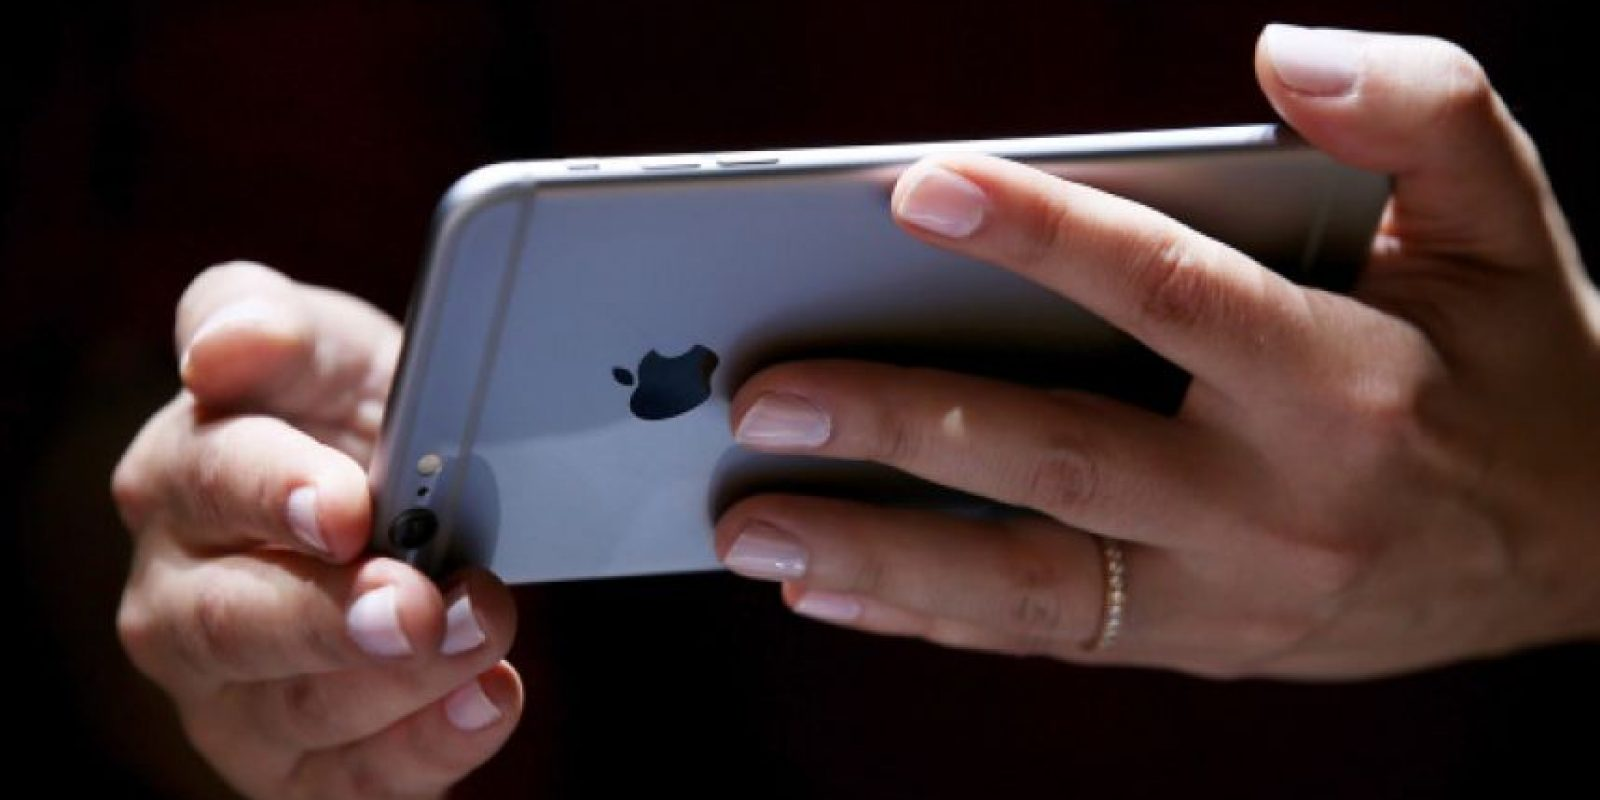 ¿Qué se espera del iPhone 7? Foto: Getty Images